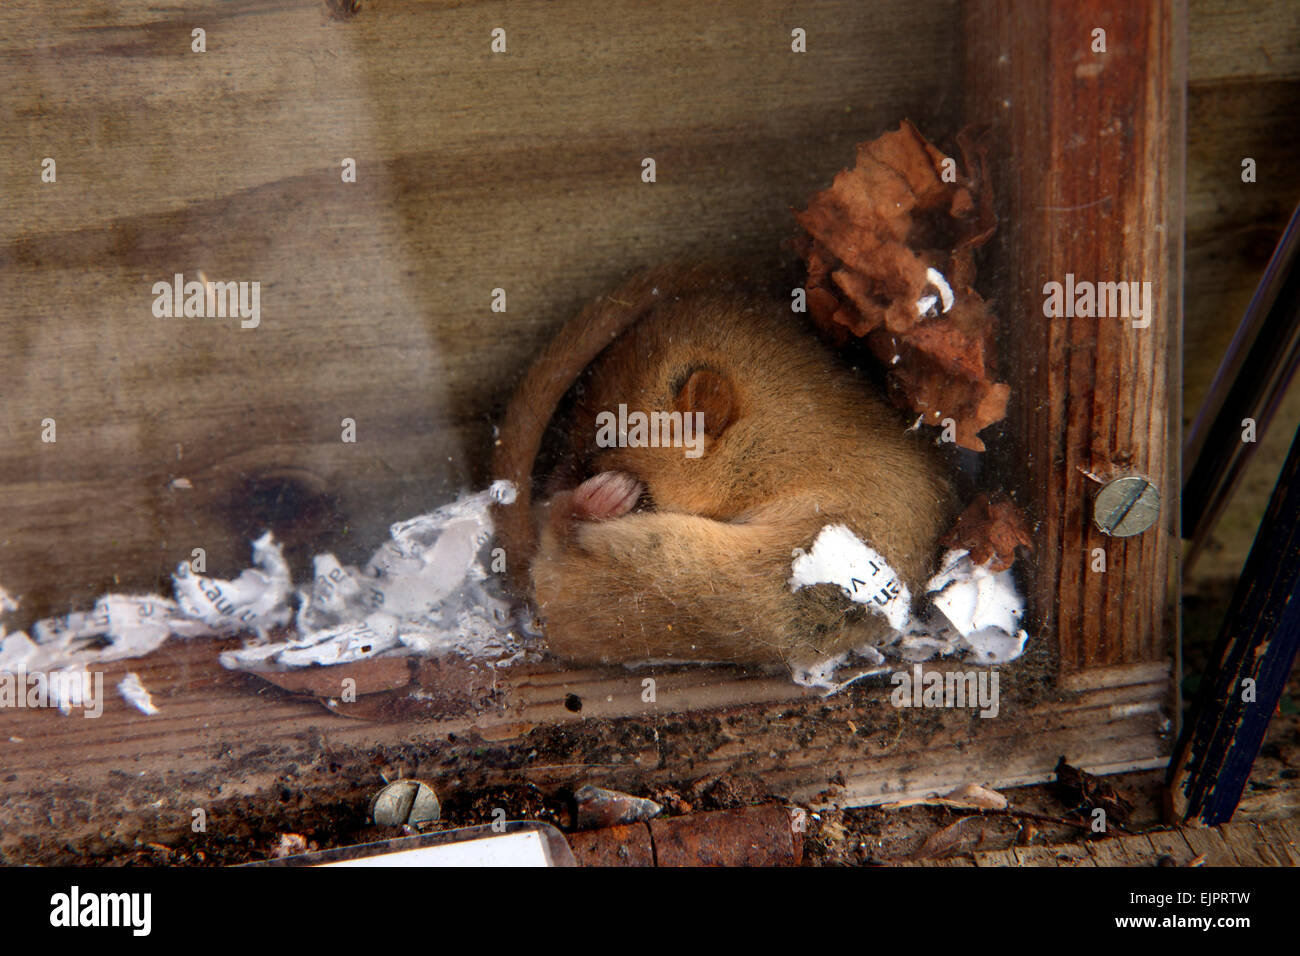 Dormouse - Muscardinus avellanarius - resting up in the day behind perspex card sales screen - Stock Image